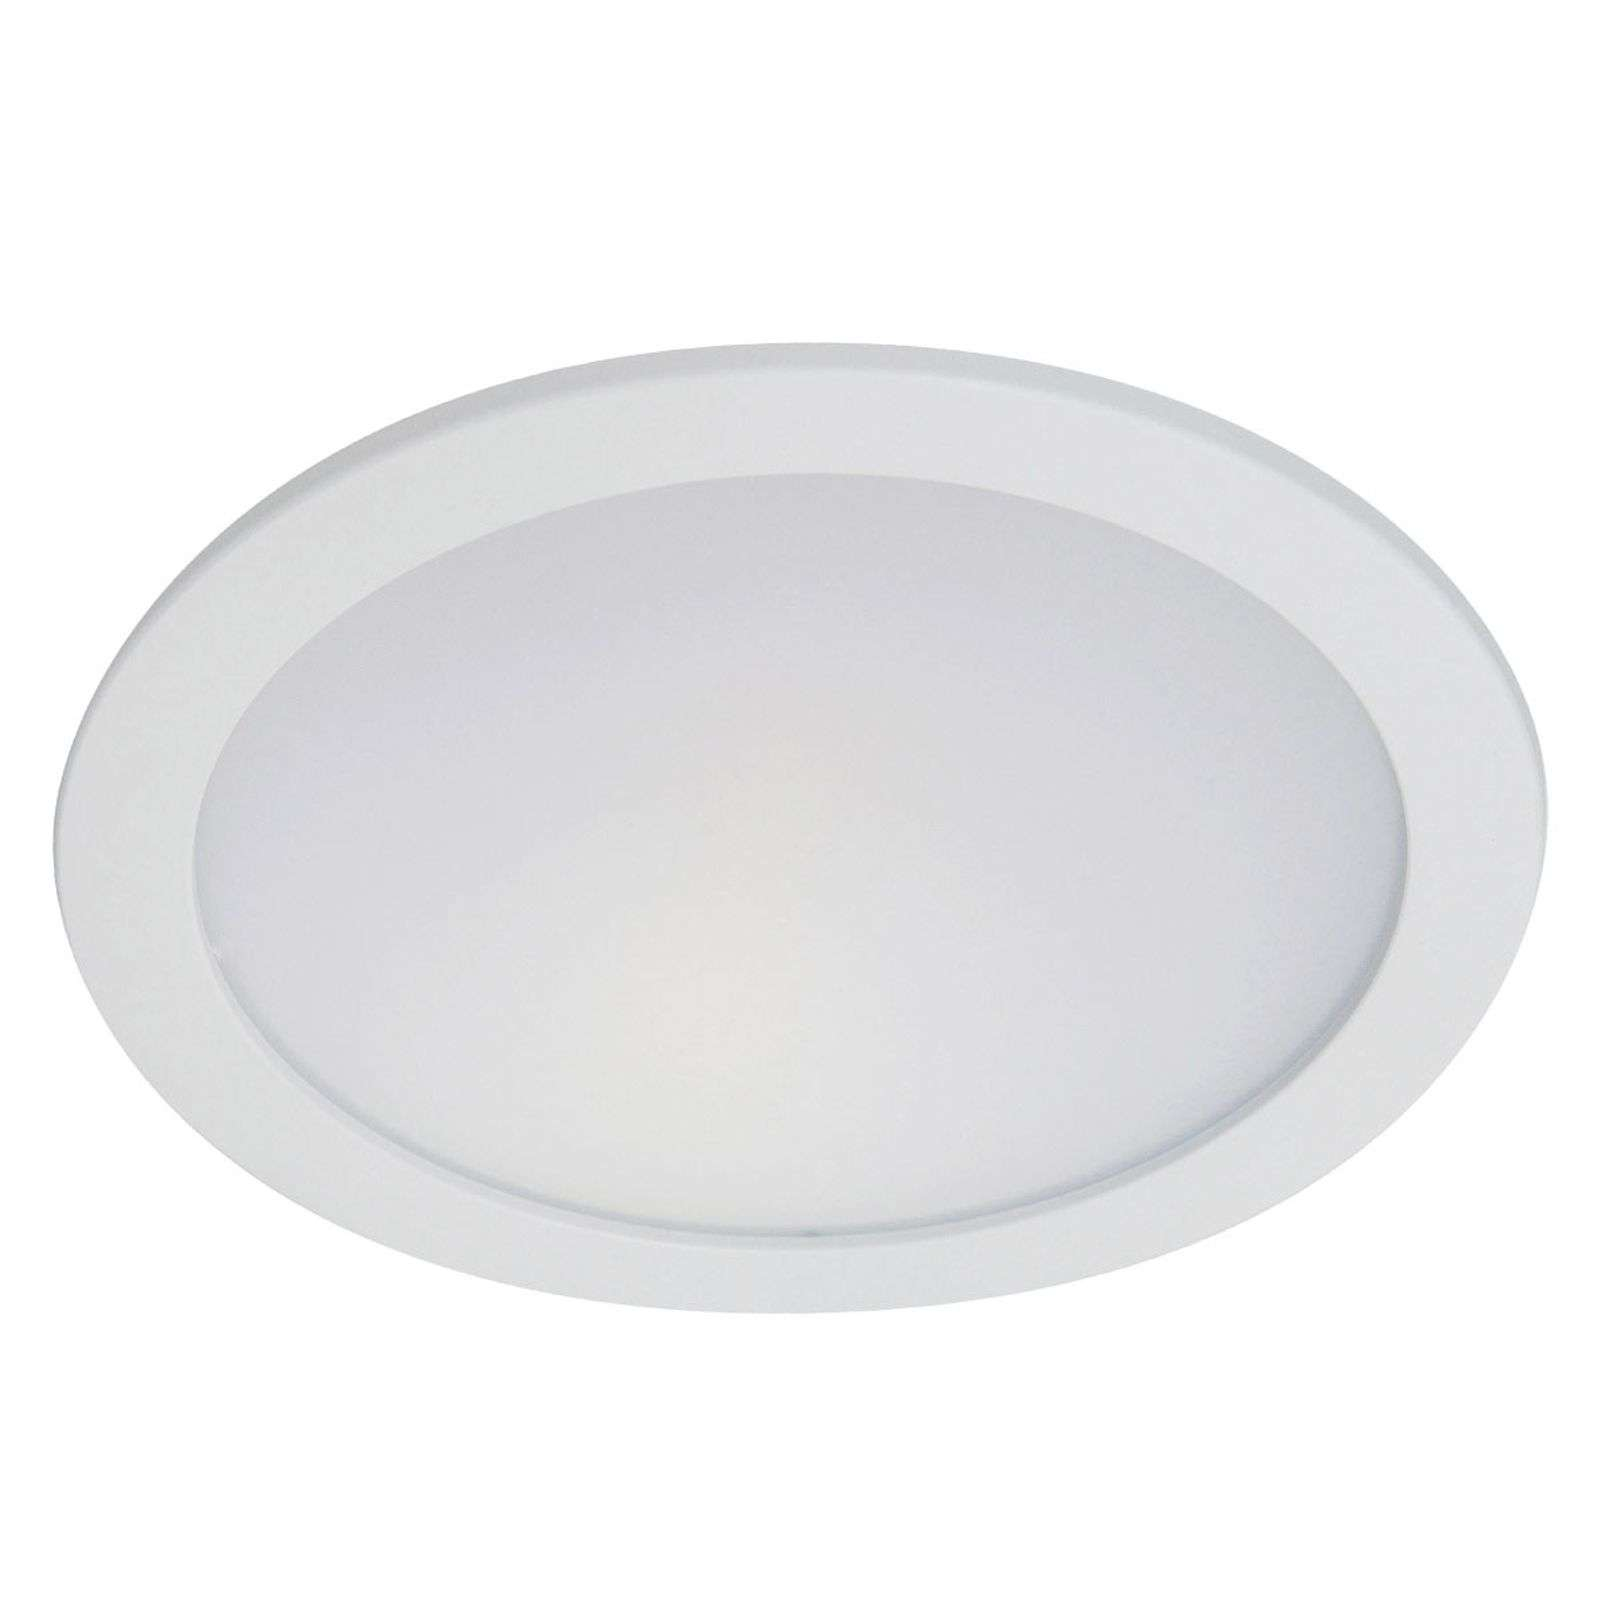 Downlight LED puissant Hony, 43 W, 3 000 K